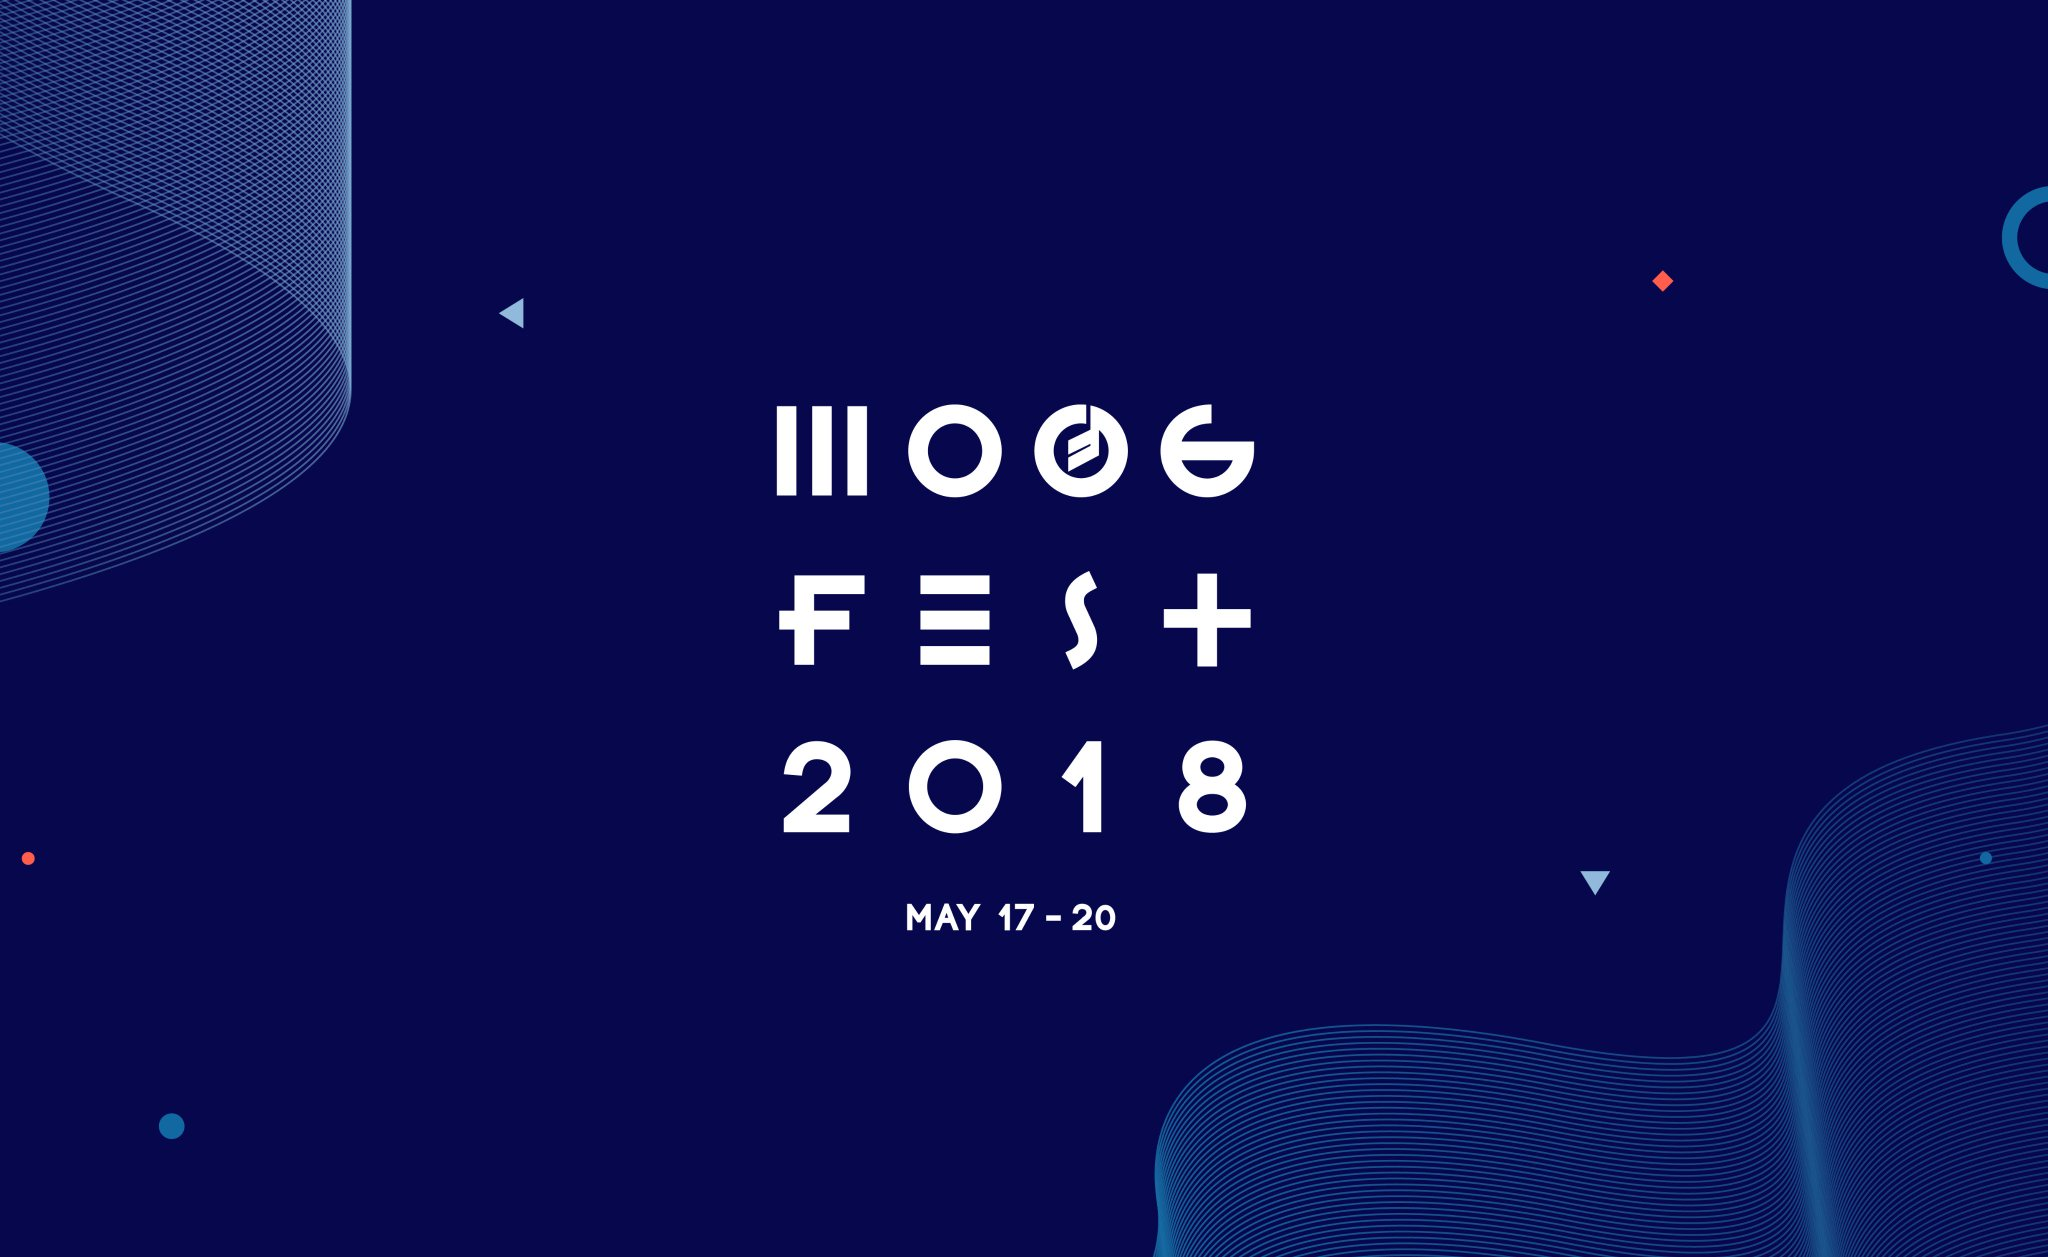 Moogfest announces 2018 lineup led by female, non-binary & transgender artists https://t.co/bVJiA44qqP https://t.co/aZv5rooXUW